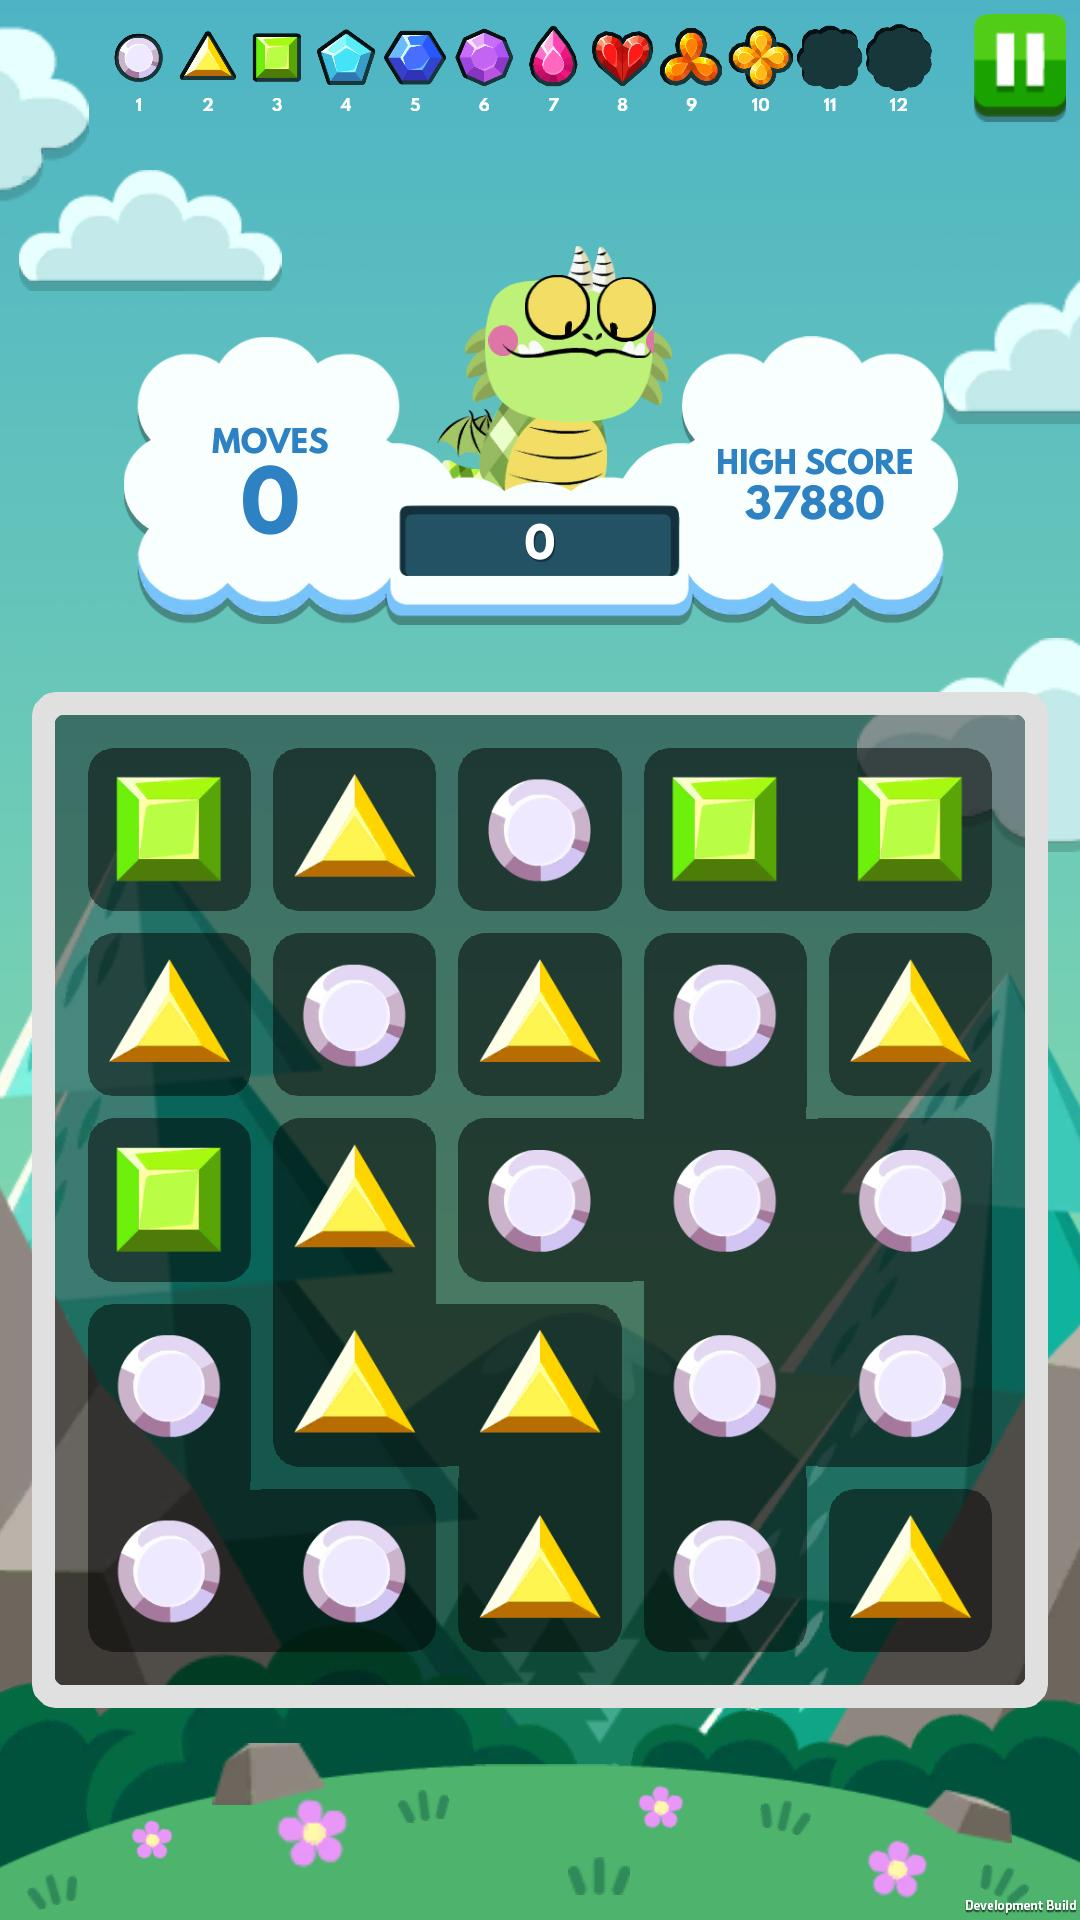 Dragon Up! Match 2 Hatch for Android - APK Download